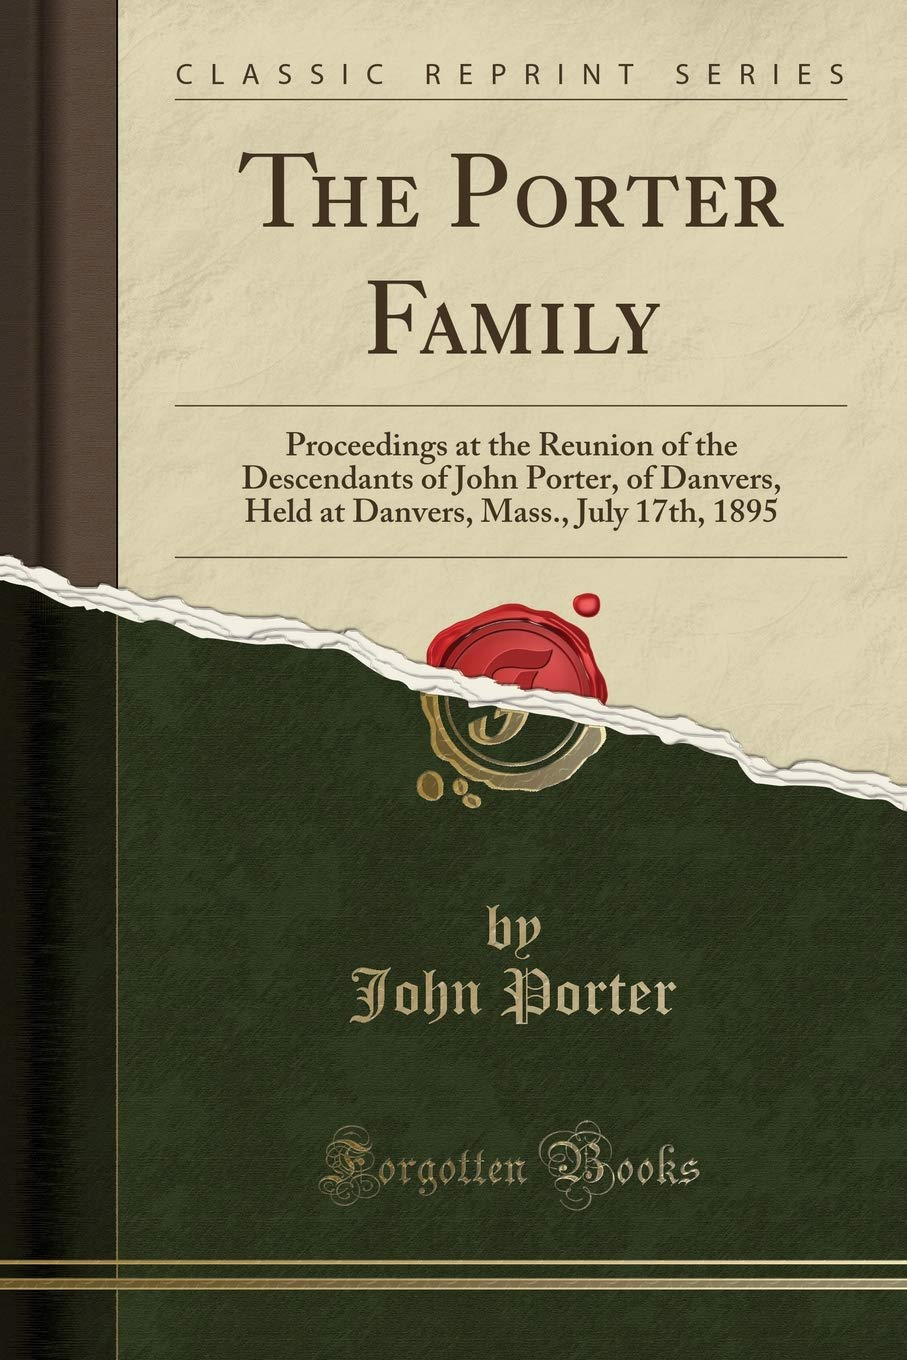 The Porter Family: Proceedings at the Reunion of the Descendants of John Porter, of Danvers, Held at Danvers, Mass., July 17th, 1895 (Classic Reprint) PDF